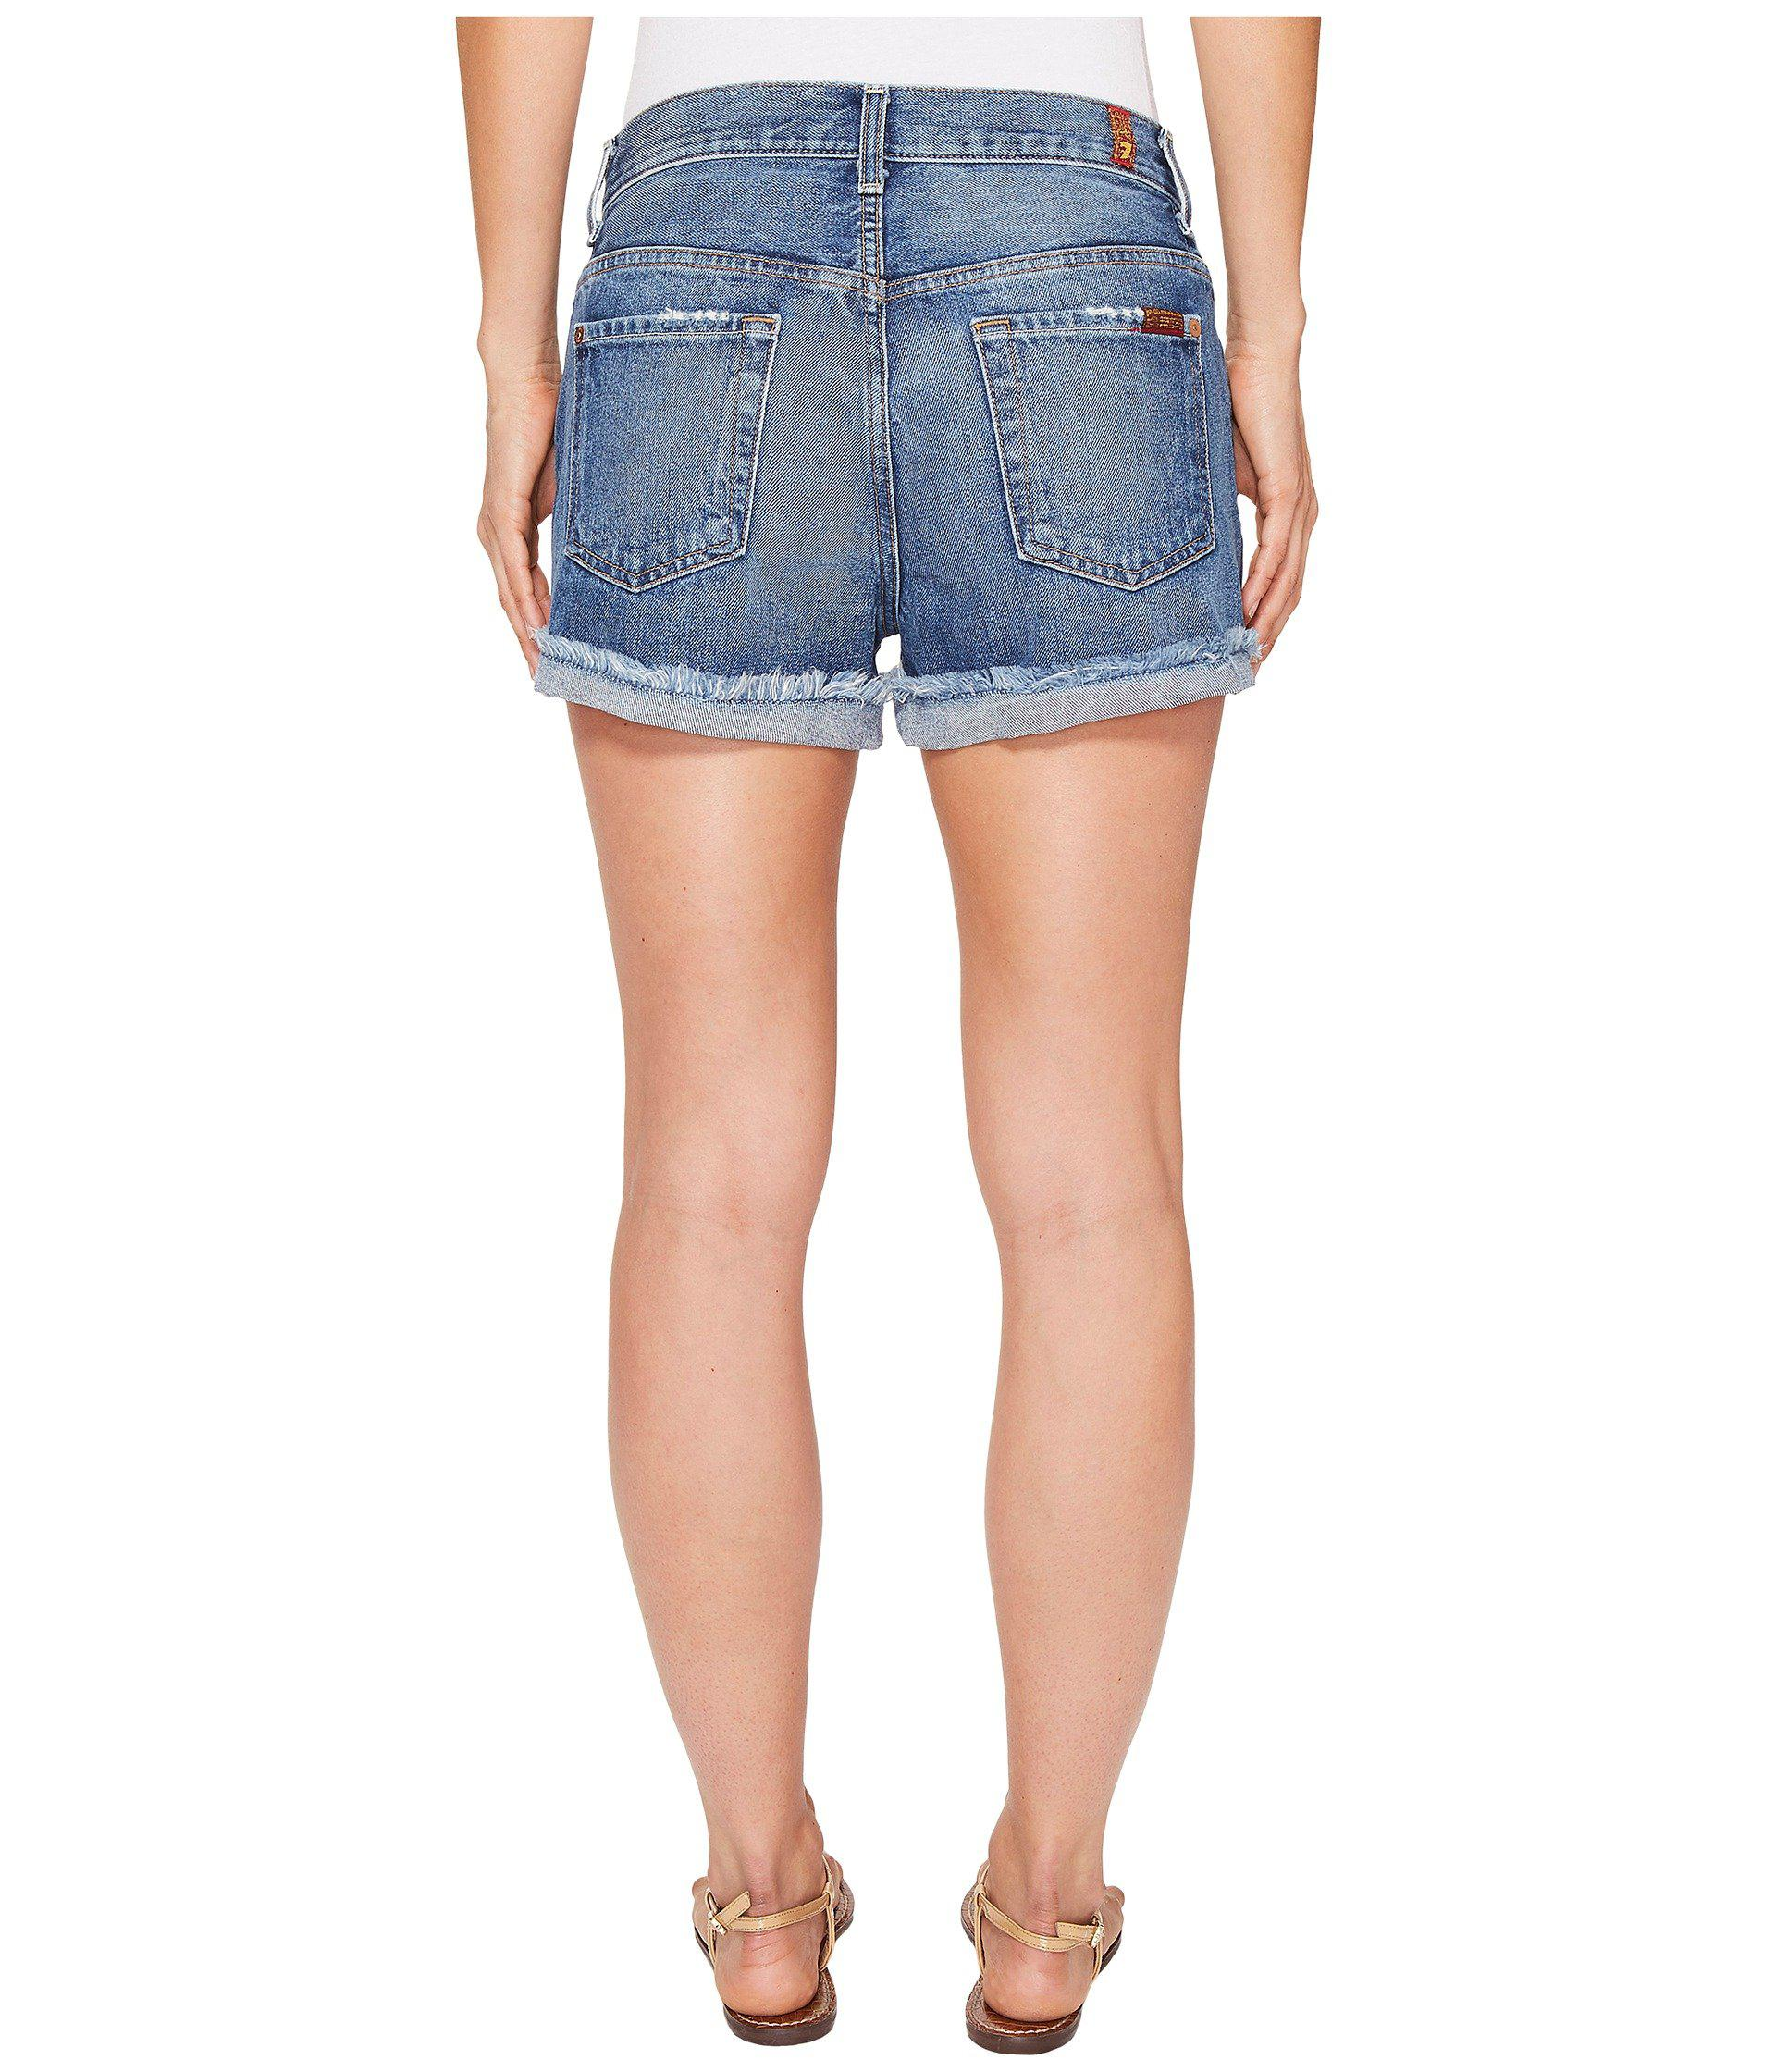 c21bfea21 Lyst - 7 For All Mankind Cut-off Short W  Aggressive Destroy In ...